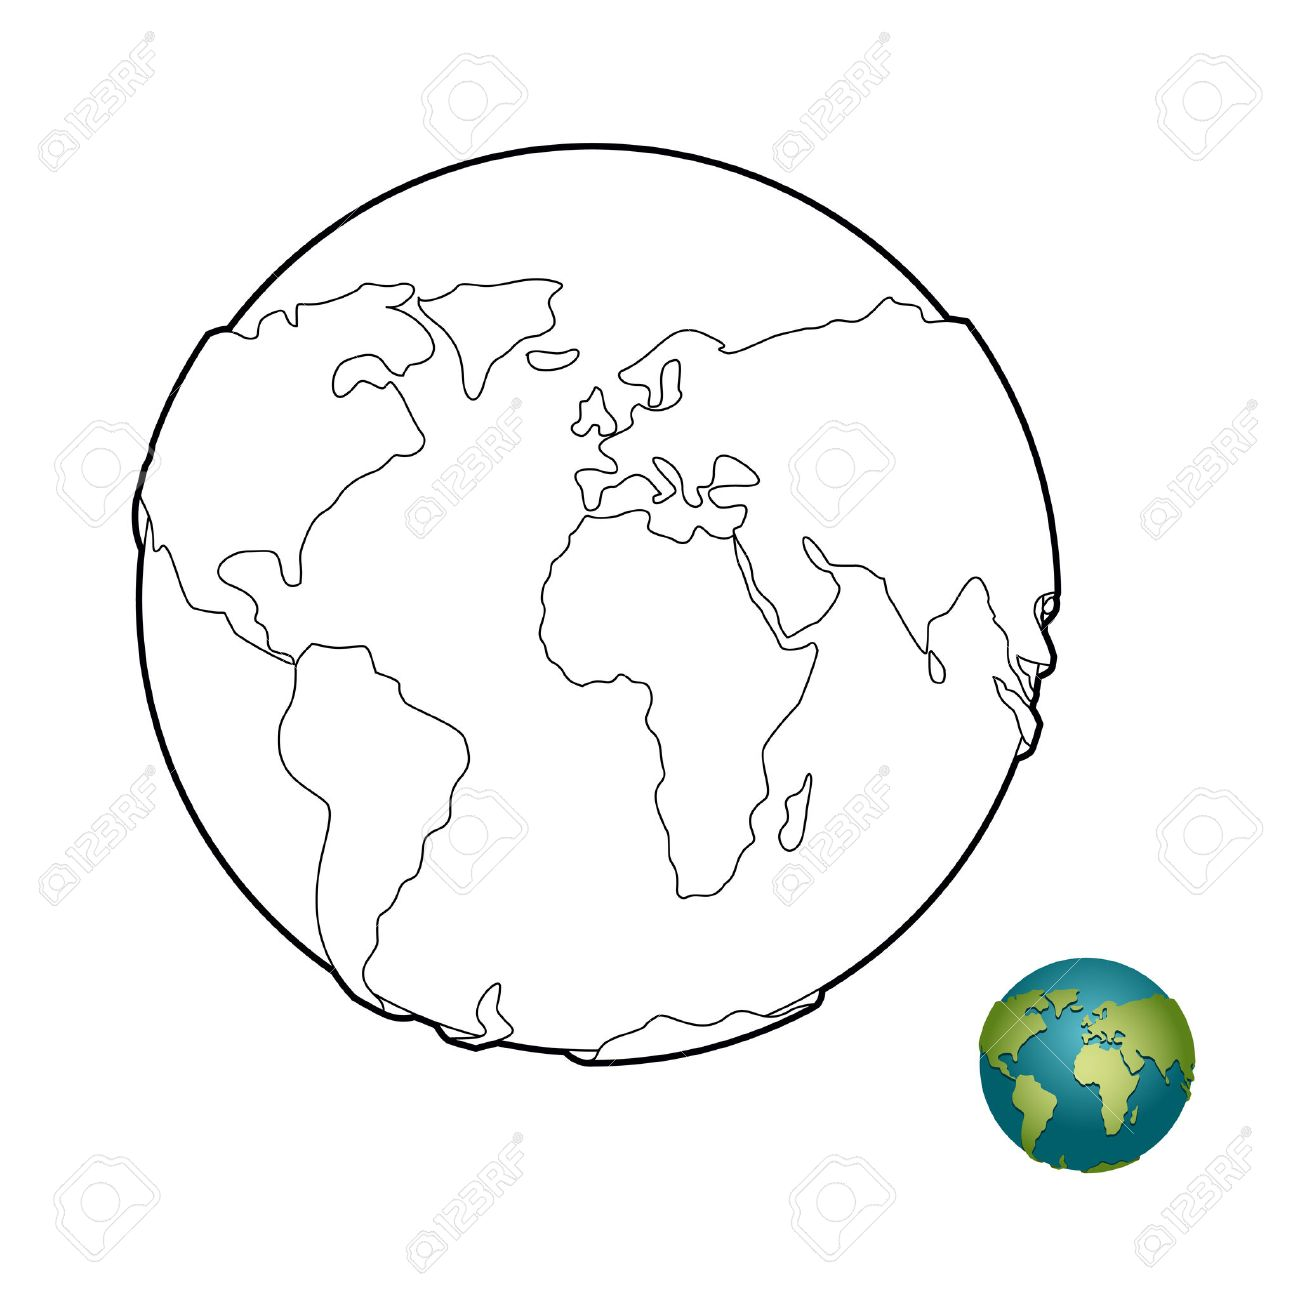 Earth Coloring Book. Heavenly Body. Planet With Mainlands. Globe ...